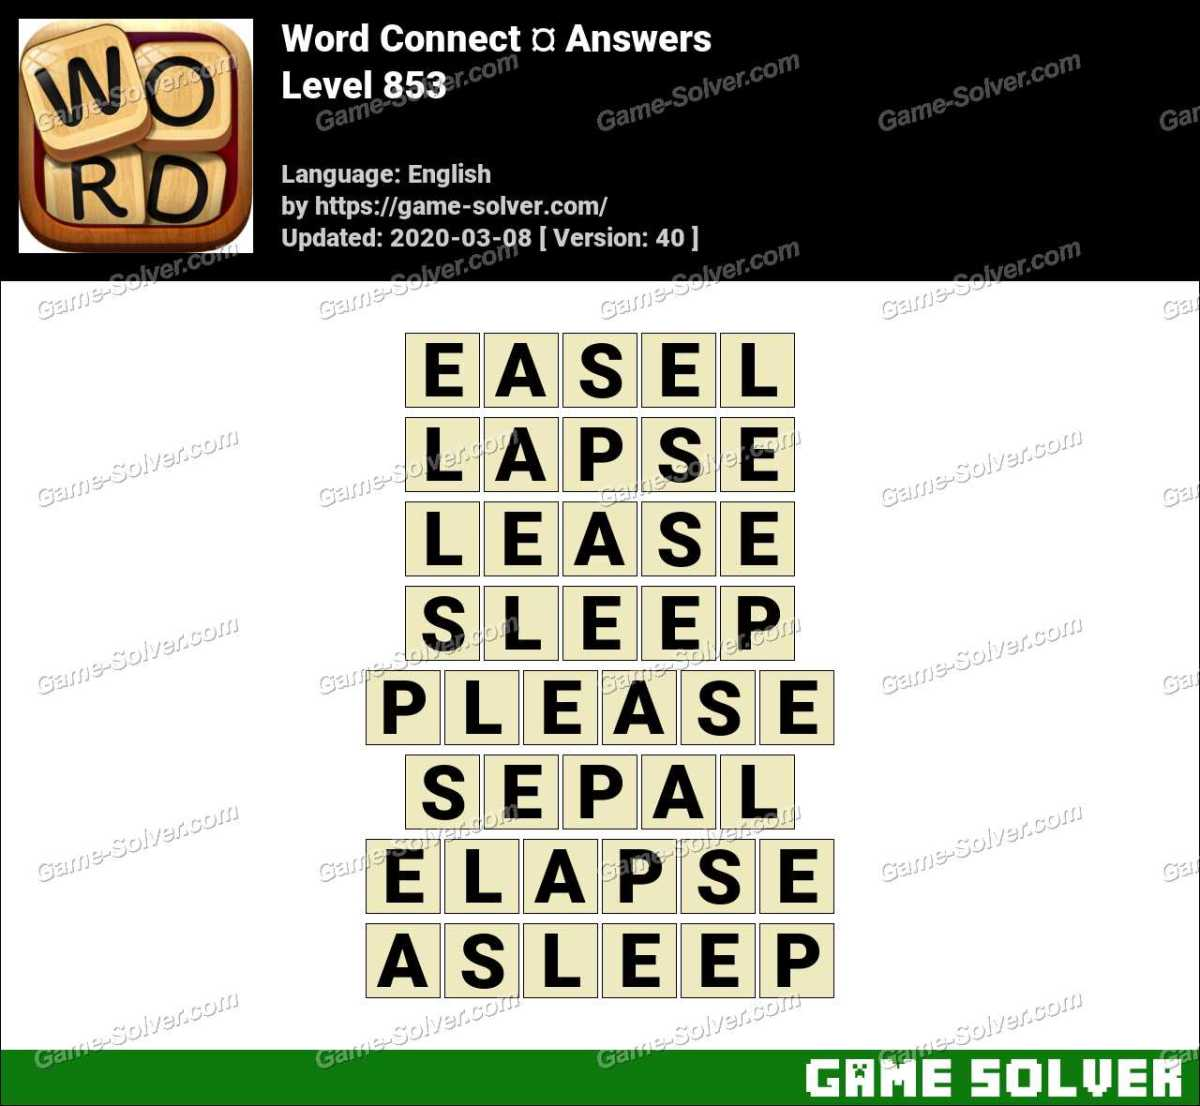 Word Connect Level 853 Answers